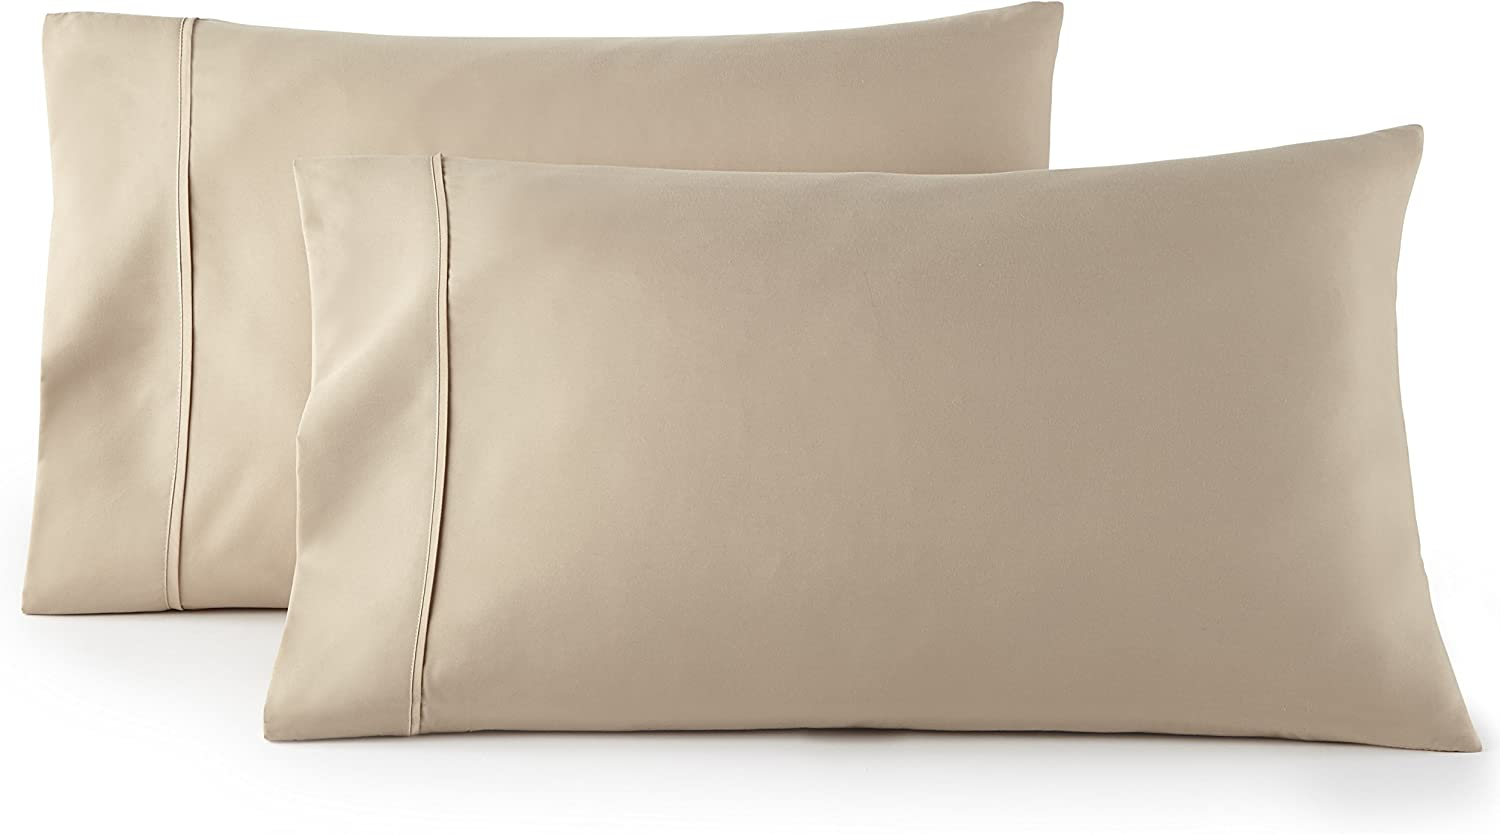 HC COLLECTION 1500 Thread Count Egyptian Quality 2pc Set of Pillow Cases, Silky Soft & Wrinkle Free-King Size, Taupe